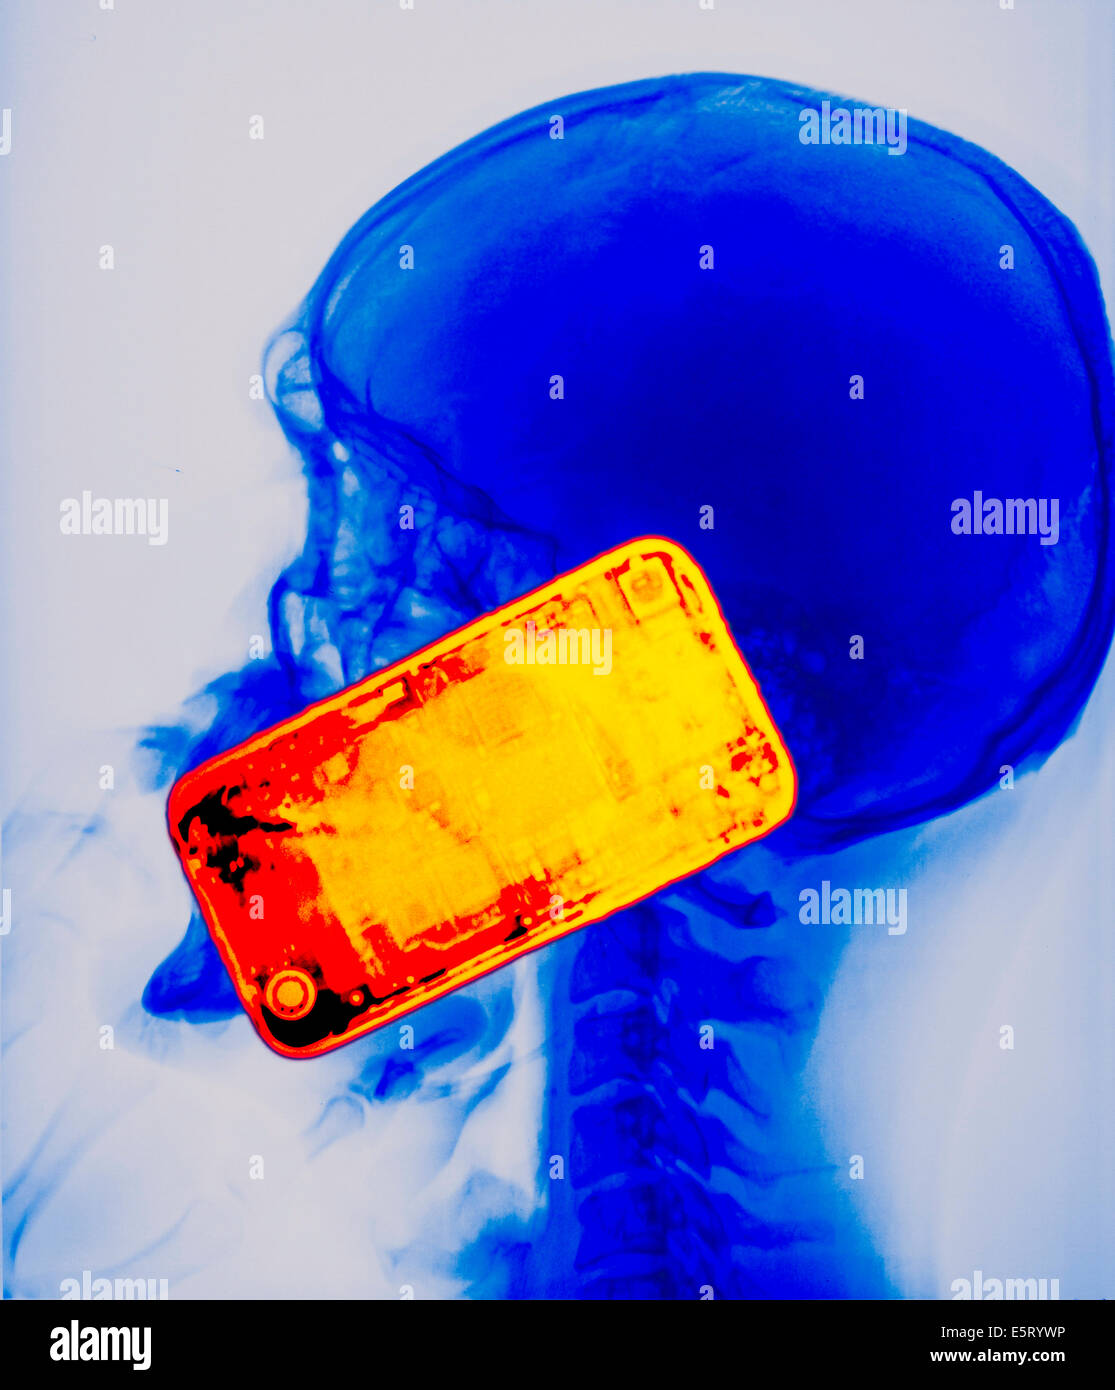 Colored X-ray showing the head of a man using a smartphone. The use of mobile phone generates microwaves that penetrate - Stock Image